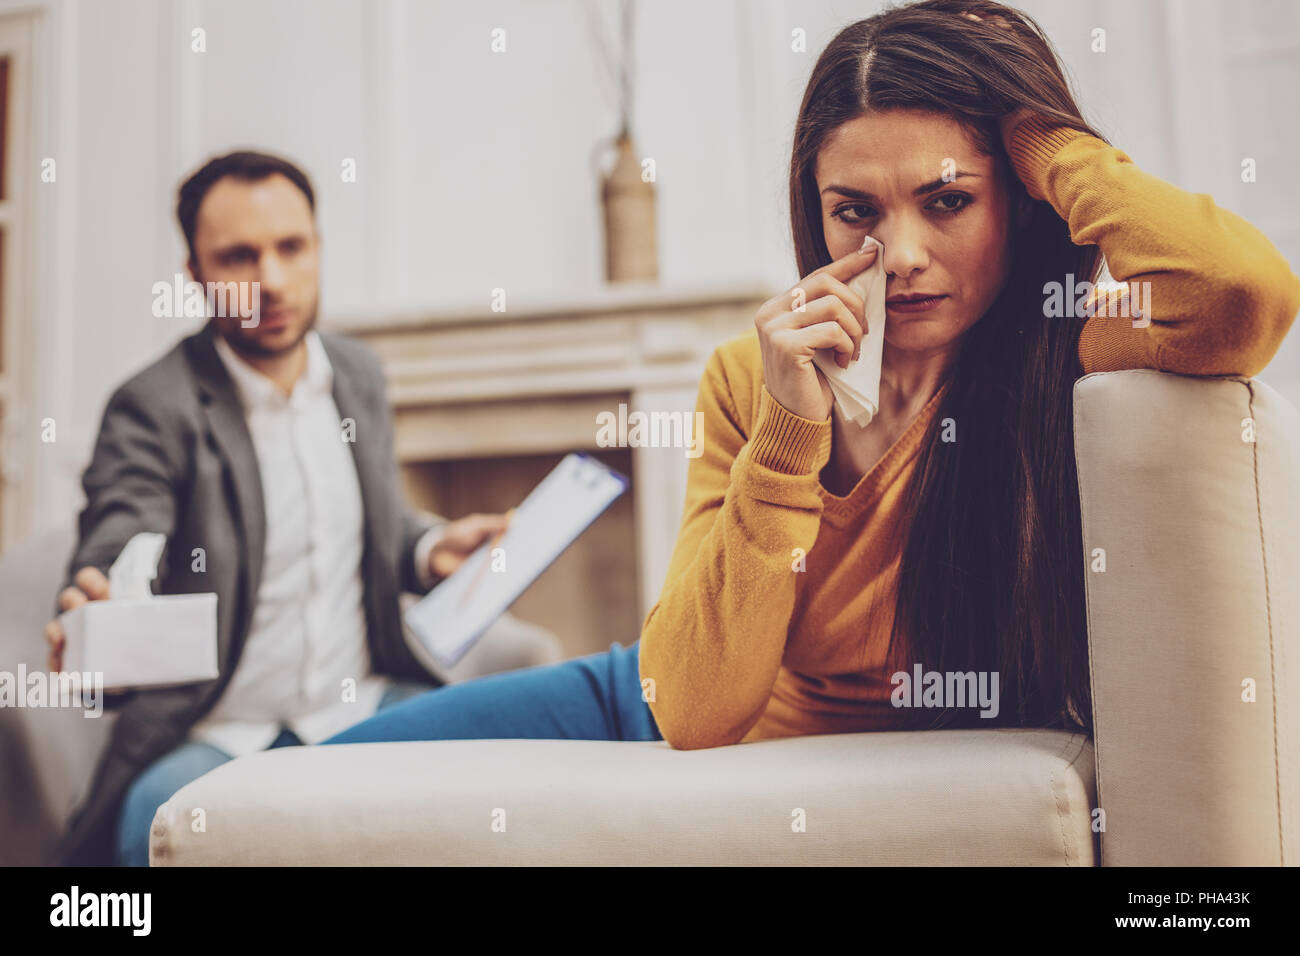 Attentive longhaired female sitting on the couch - Stock Image